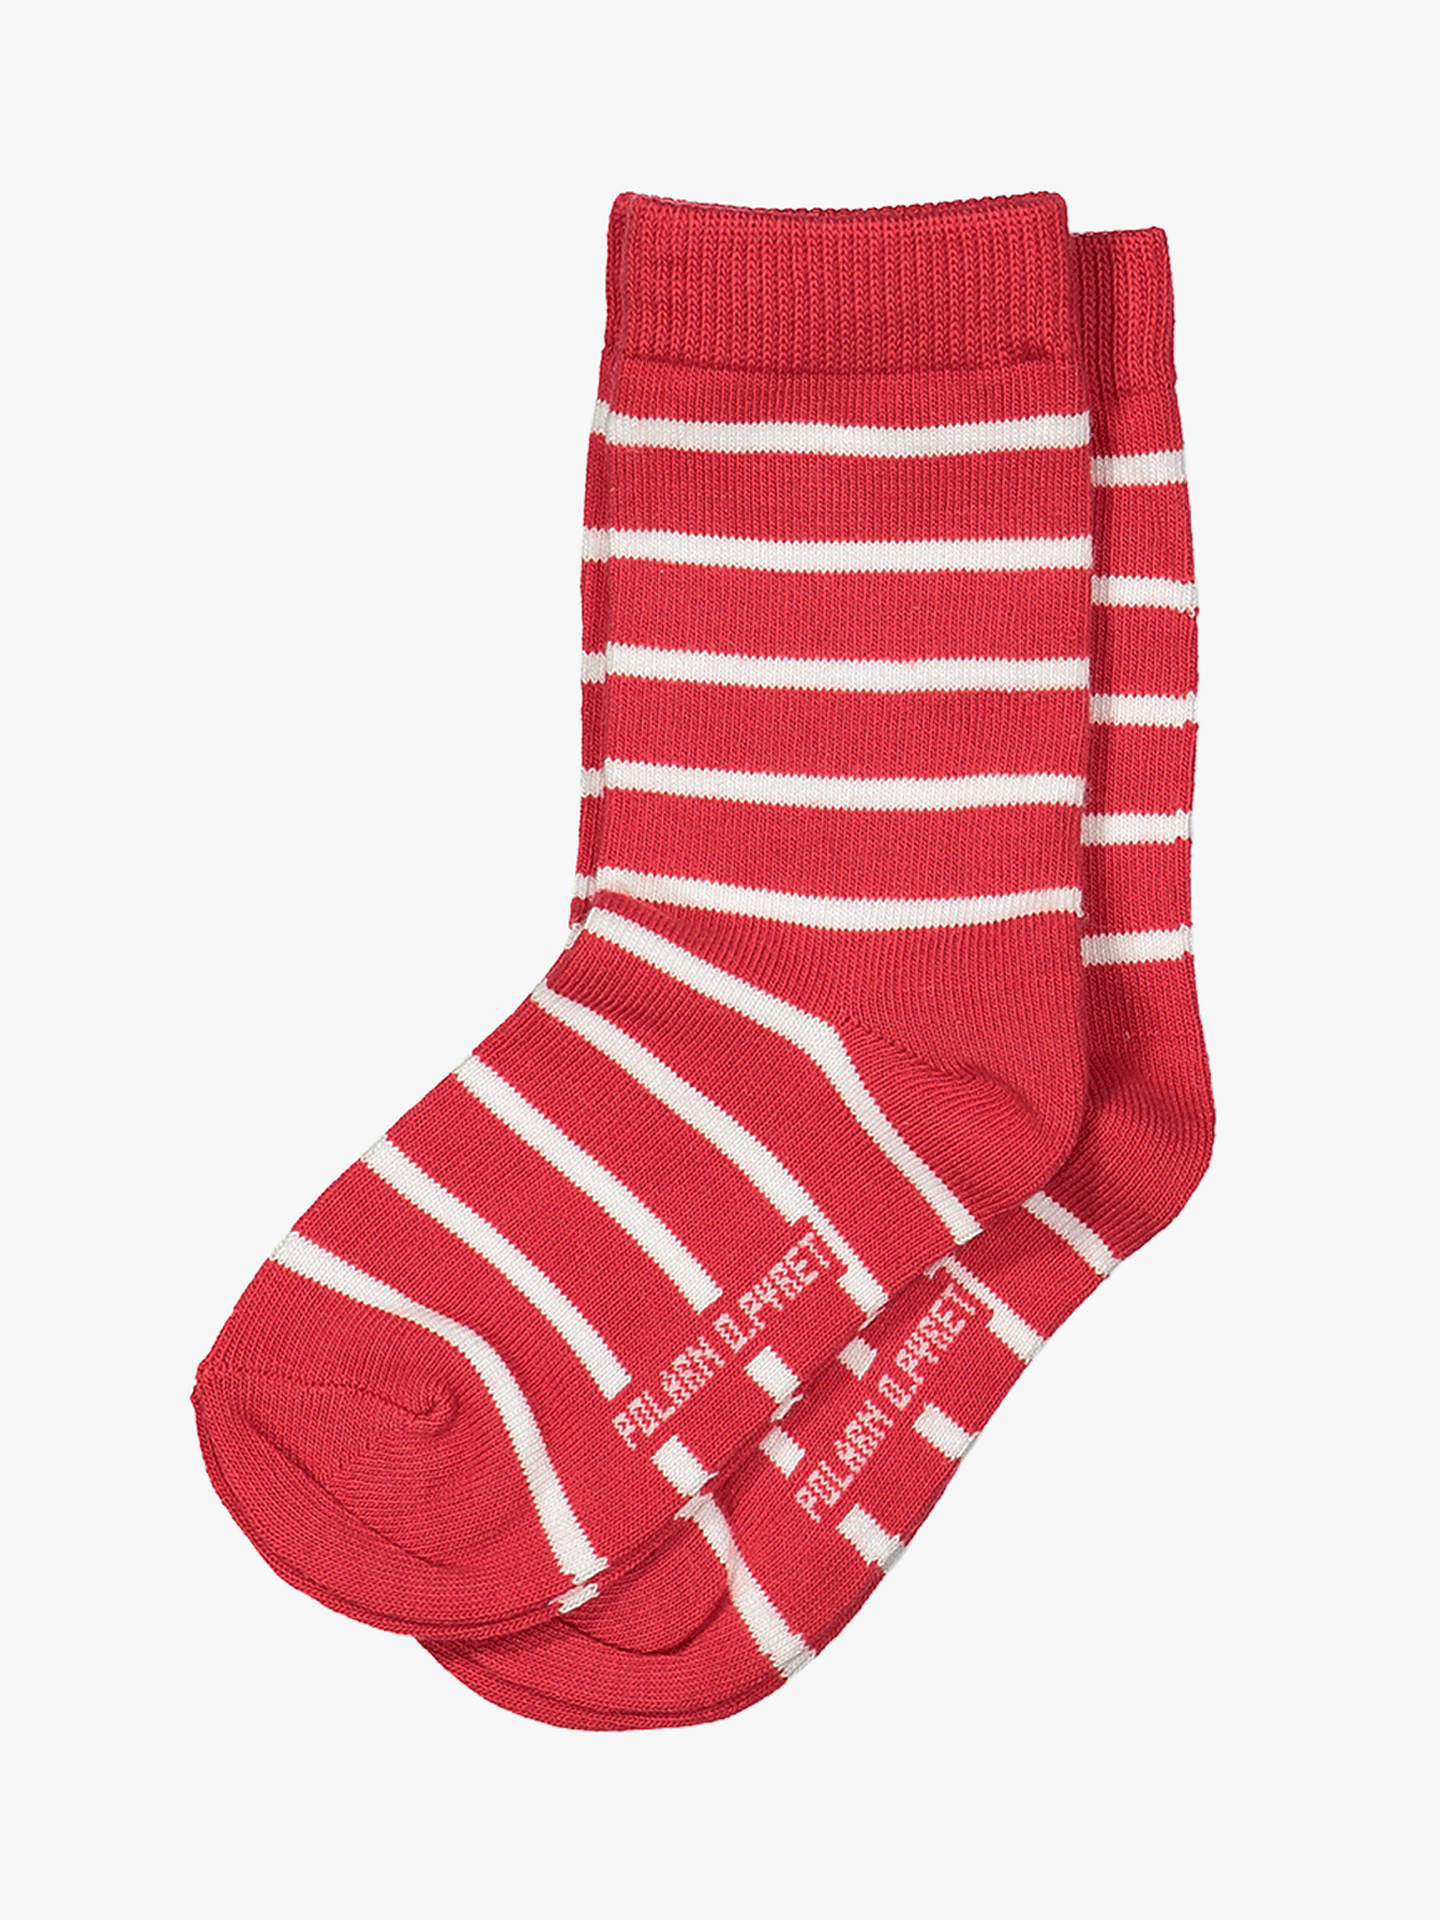 BuyPolarn O. Pyret Baby Stripe Socks, Pack of 2, Red, 4-9 months Online at johnlewis.com